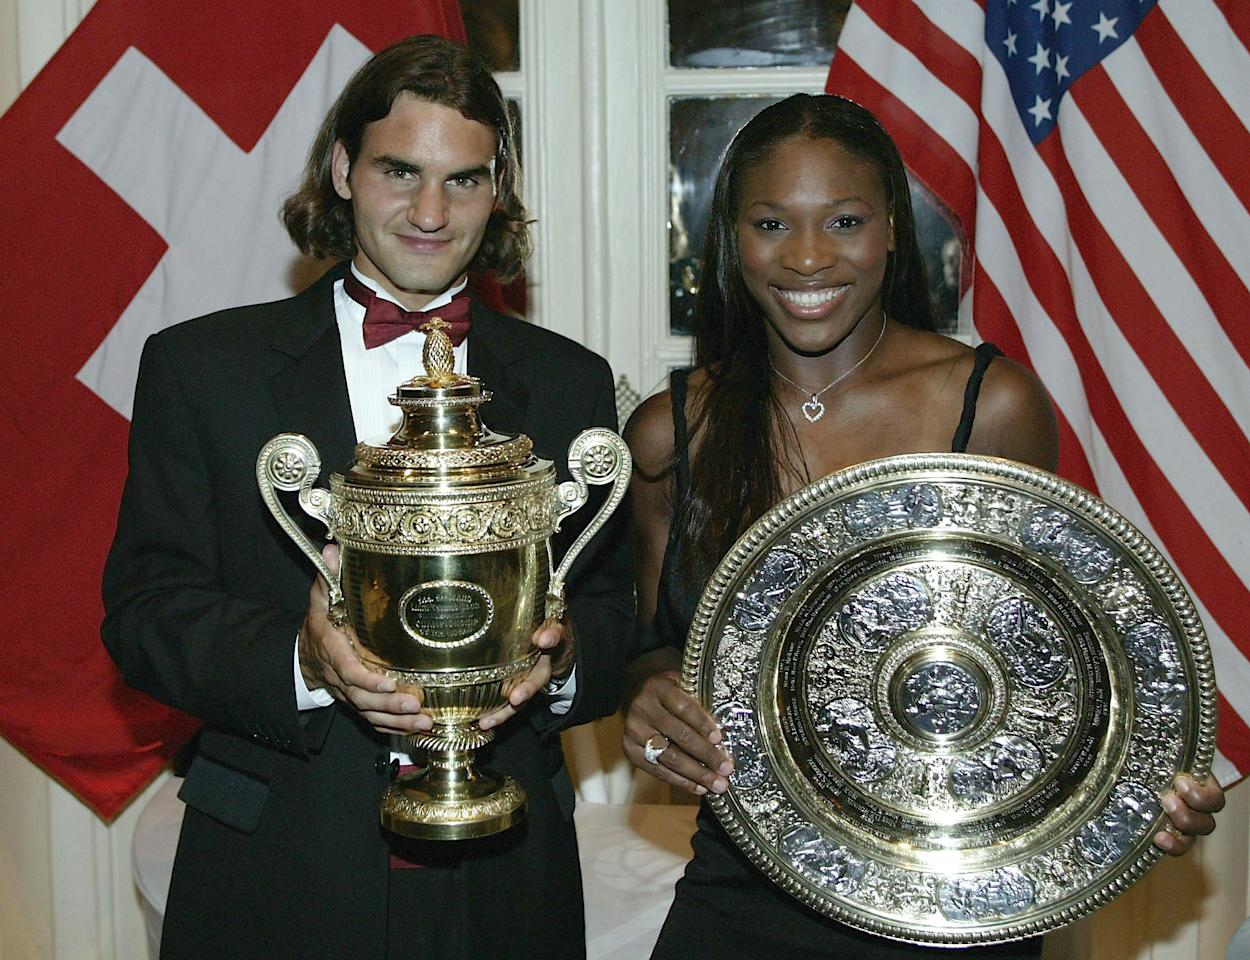 LONDON - JULY 6:  (FILE PHOTO) Wimbledon Champions Roger Federer of Switzerland and Serena Williams of the U.S. pose for photographs prior to attending the Wimbledon Ball at the Savoy Hotel on July 6, 2003 in London.  (Photo by Alex Livesey/Getty Images)  Celebrating 125 Years Of Wimbledon  Please refer to the following profile on Getty Images Archival for further imagery.  http://www.gettyimages.co.uk/Search/Search.aspx?EventId=115973863&EditorialProduct=Archival Fashions  http://www.gettyimages.co.uk/Search/Search.aspx?EventId=115973067&EditorialProduct=Archival  For further imagery also see this lightbox http://www.gettyimages.co.uk/Account/MediaBin/LightboxDetail.aspx?Id=19295855&MediaBinUserId=3936288